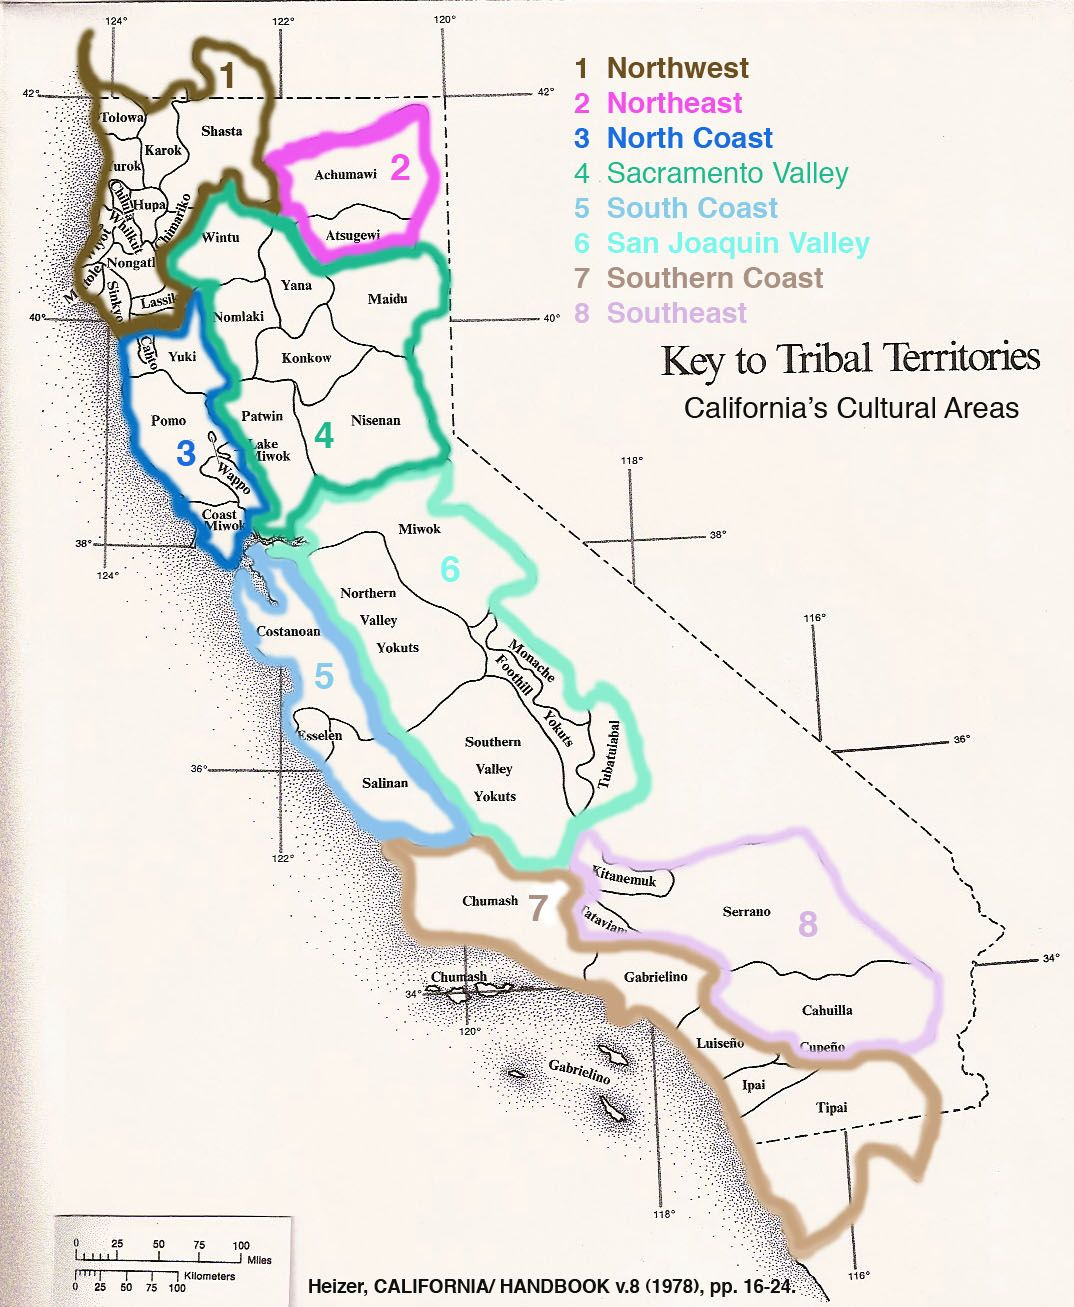 Tribal Territories in California | People: Indigenous to Mt Shasta on